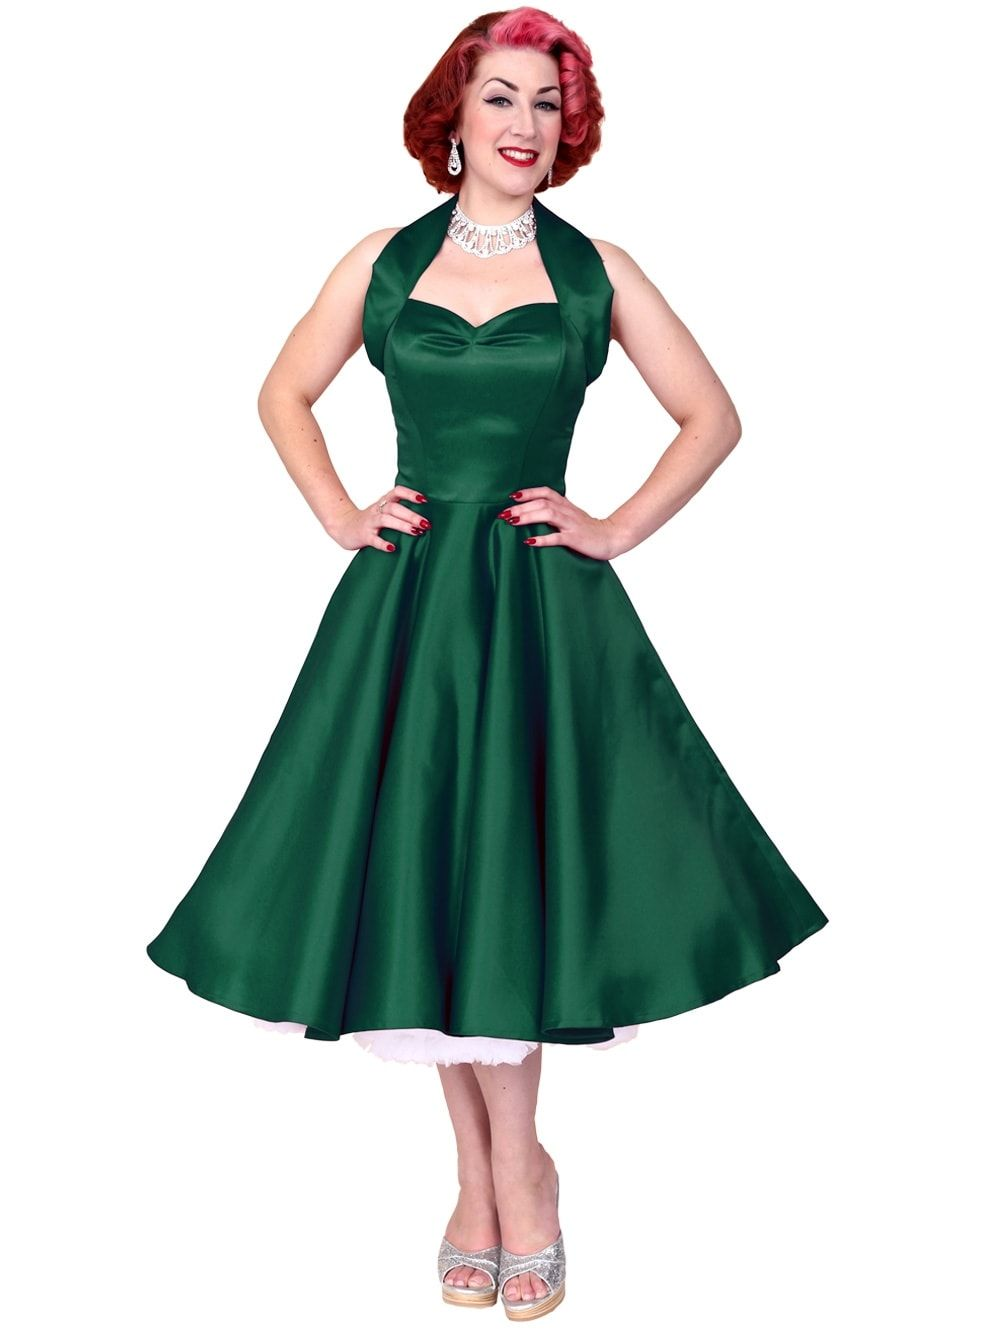 5531bb76db835 50s-1950s-Vivien-of-Holloway-Best-Vintage-Reproduction-Halterneck-Circle- Dress-Forest-Green-Duchess-Rockabilly-Swing-Pinup